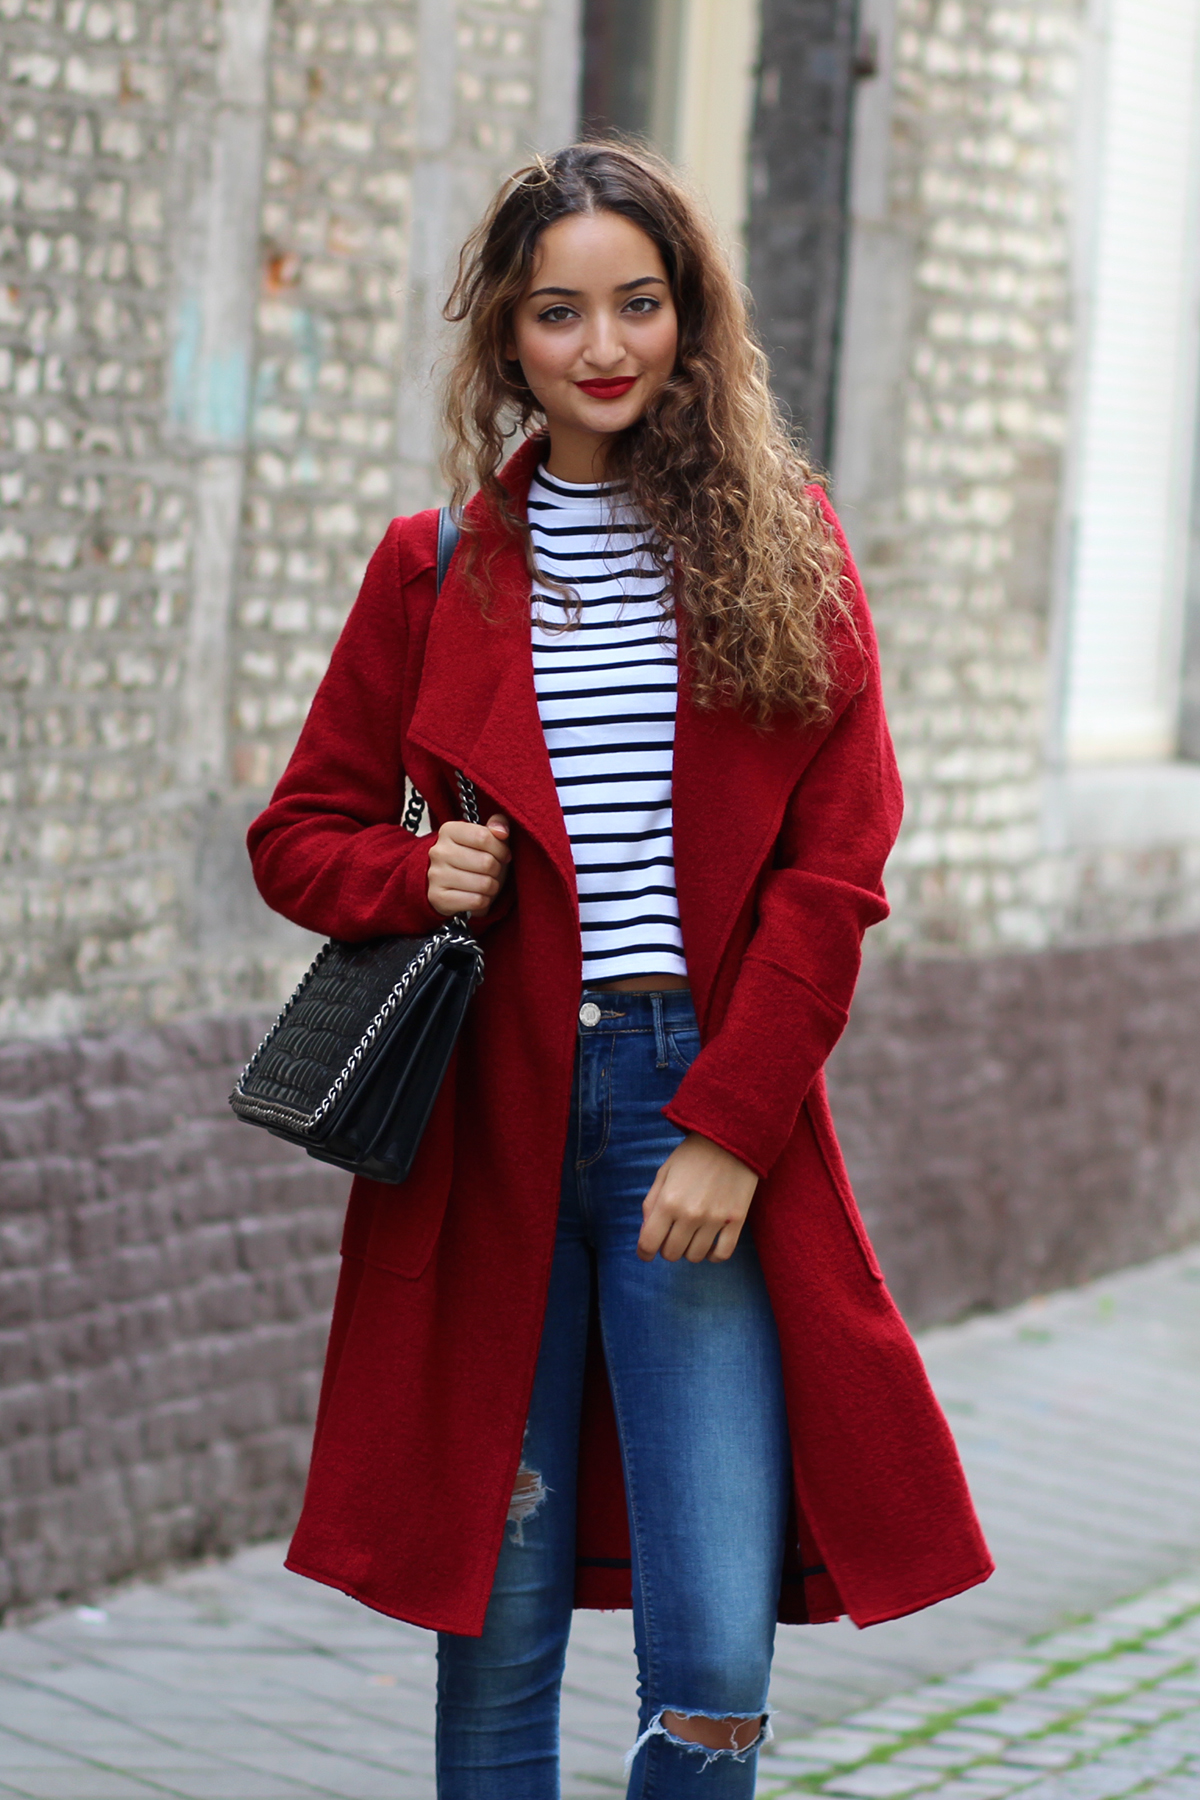 Girl in the Red Coat – Fashionblog & Style Diary by Ranim Helwani